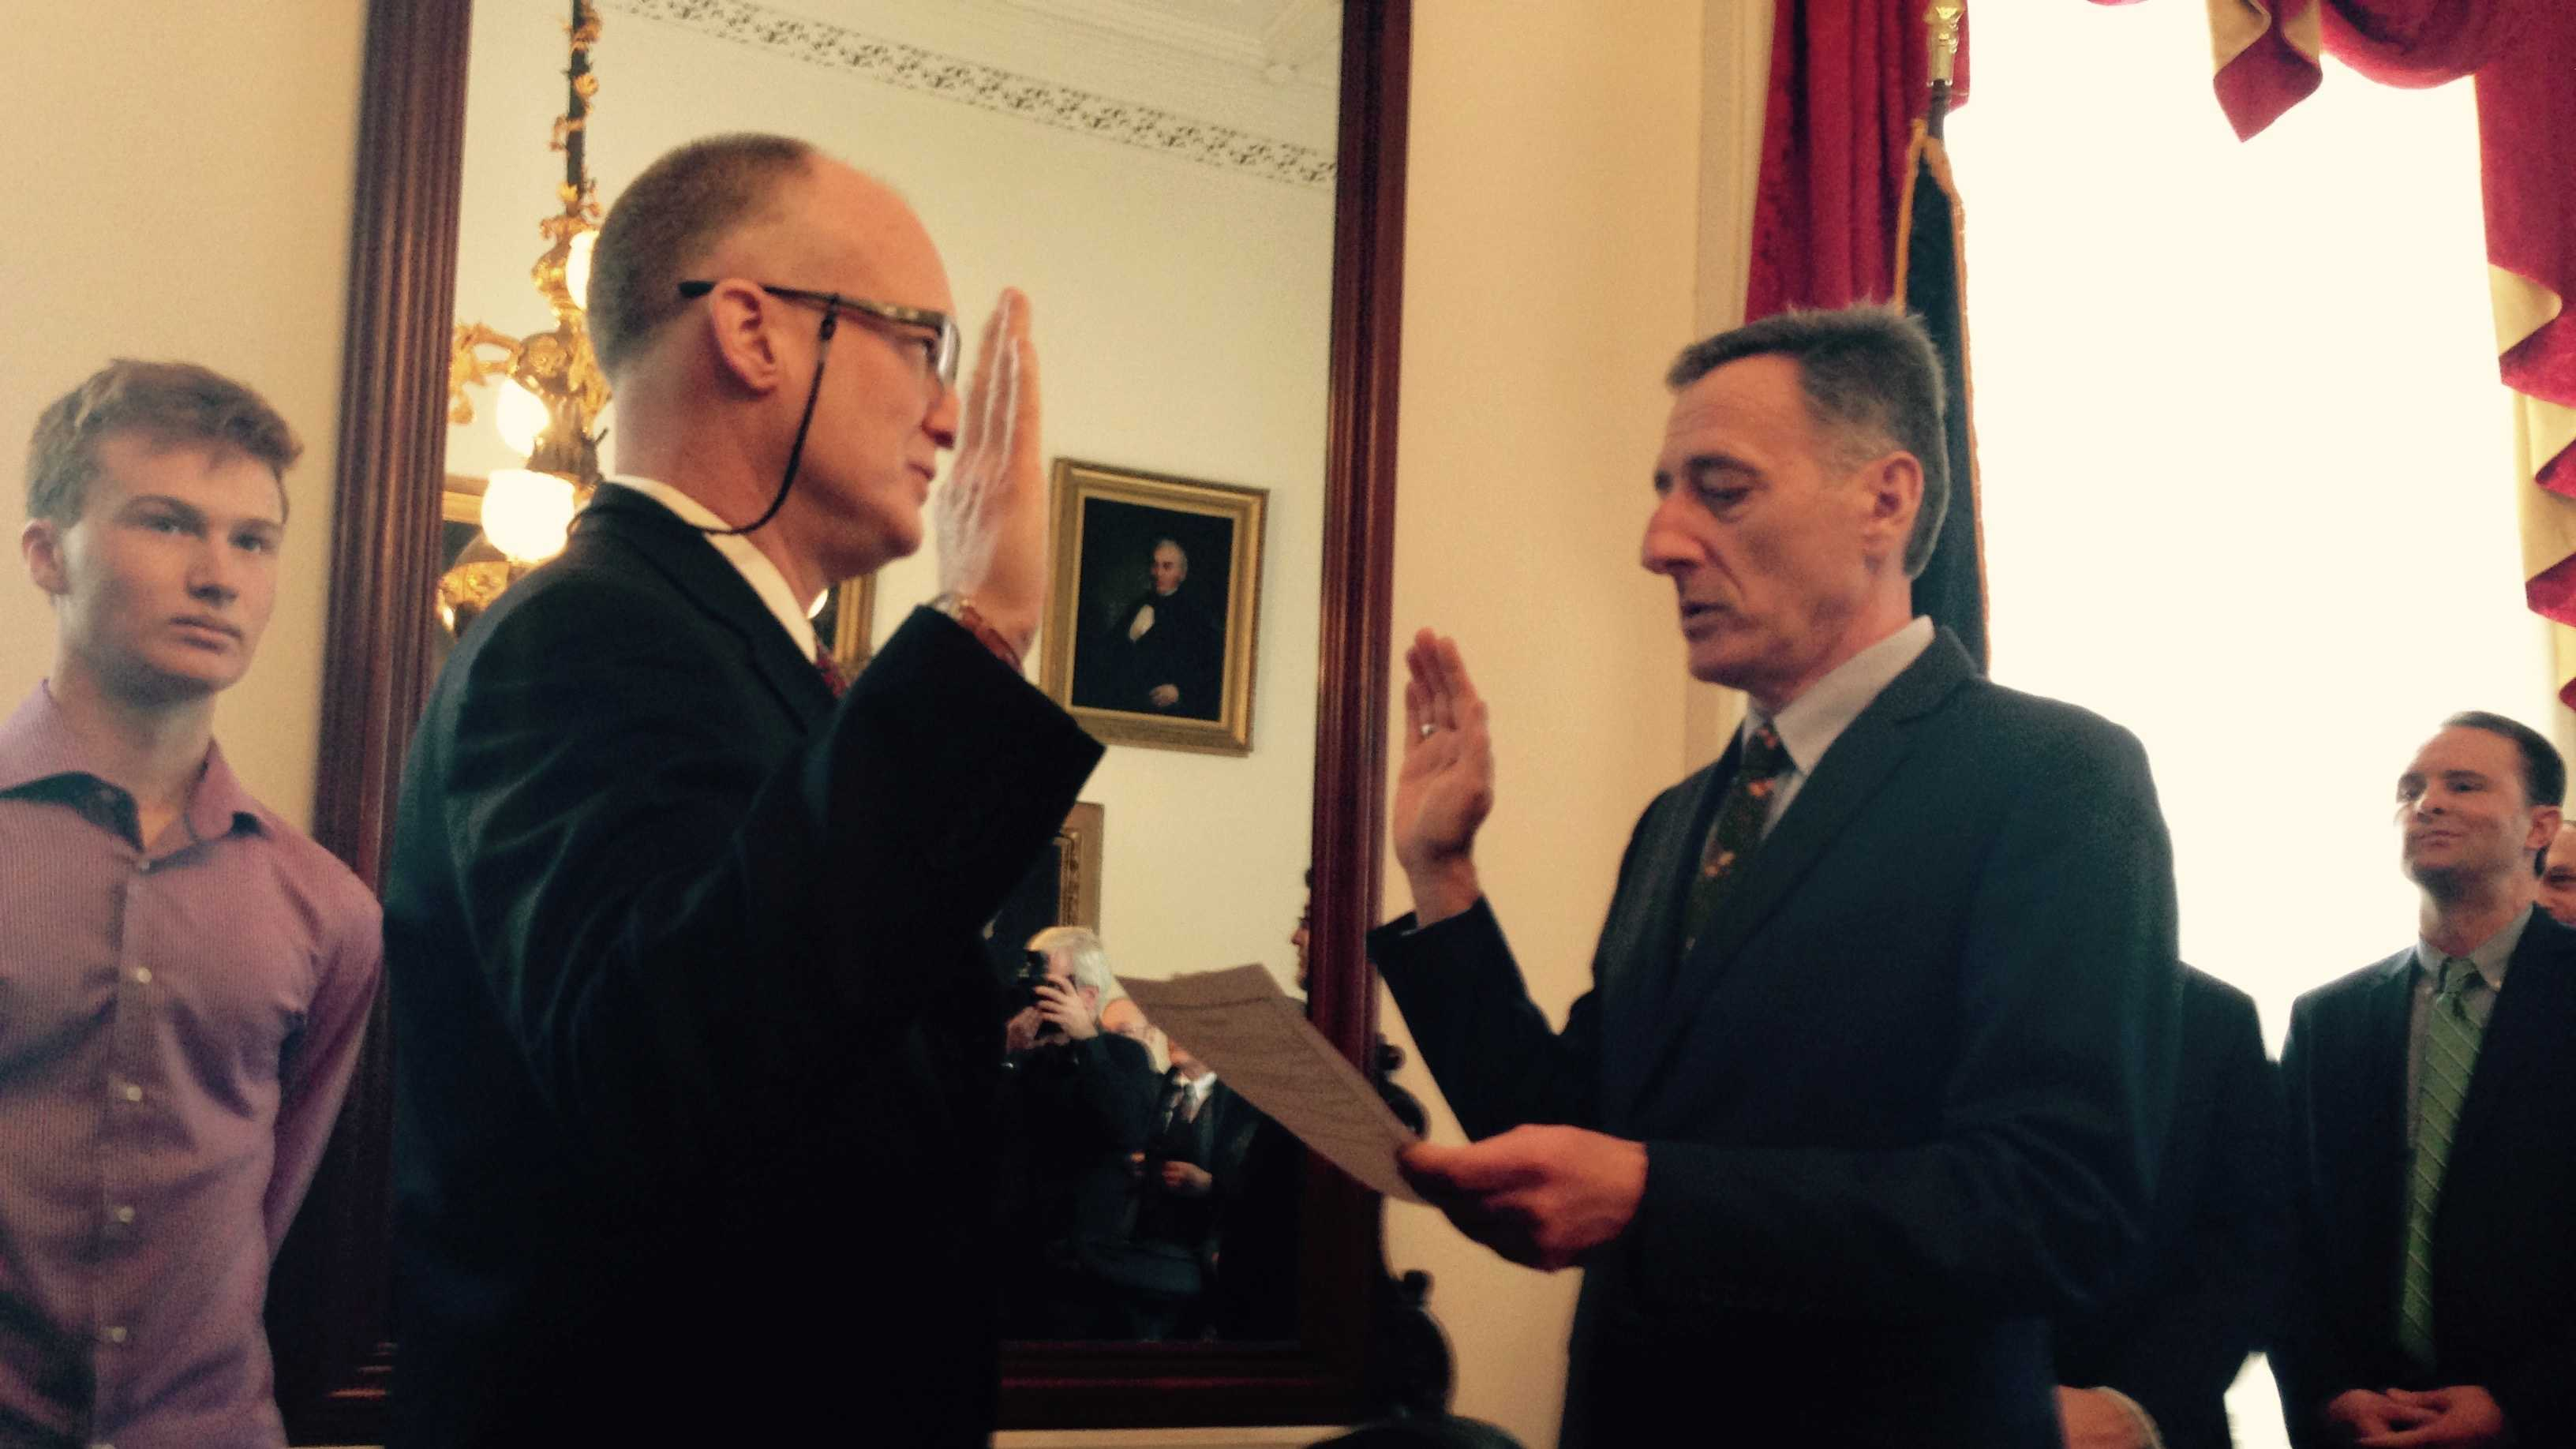 Gov. Peter Shumlin administers the oath to Washington County State's Attorney Scott Williams.